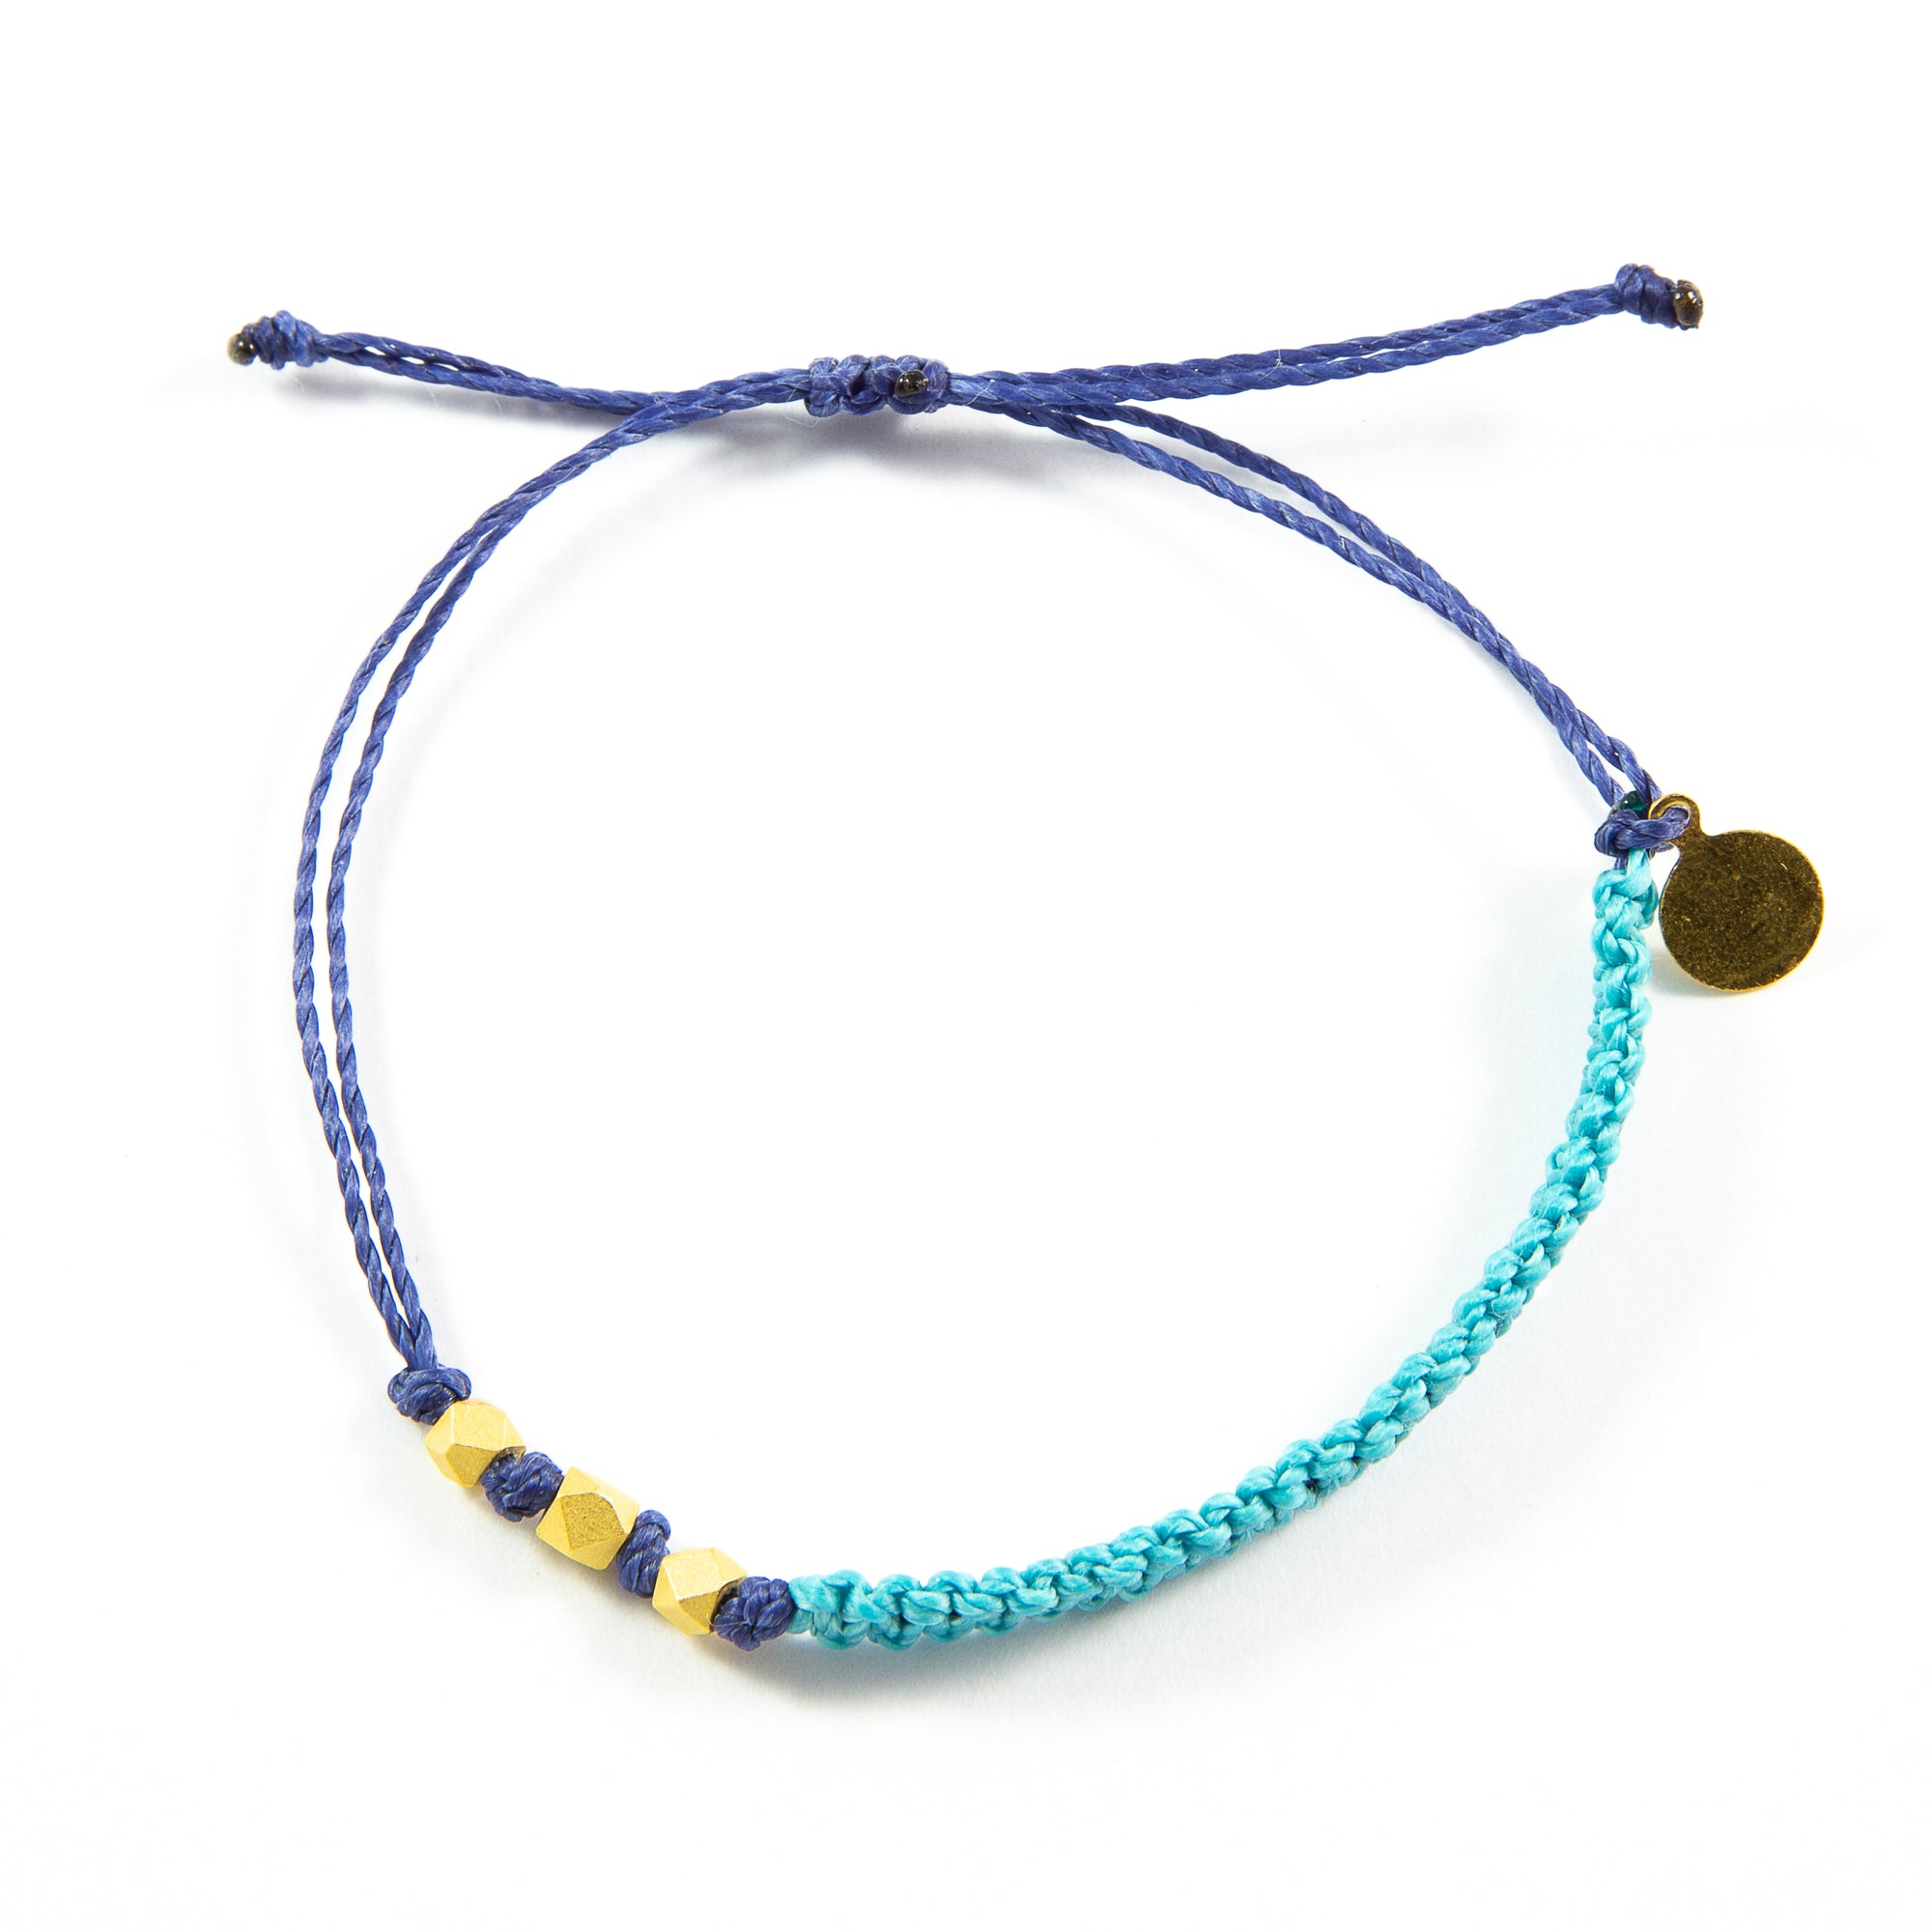 Teal & Navy Macrame Bracelet in Gold